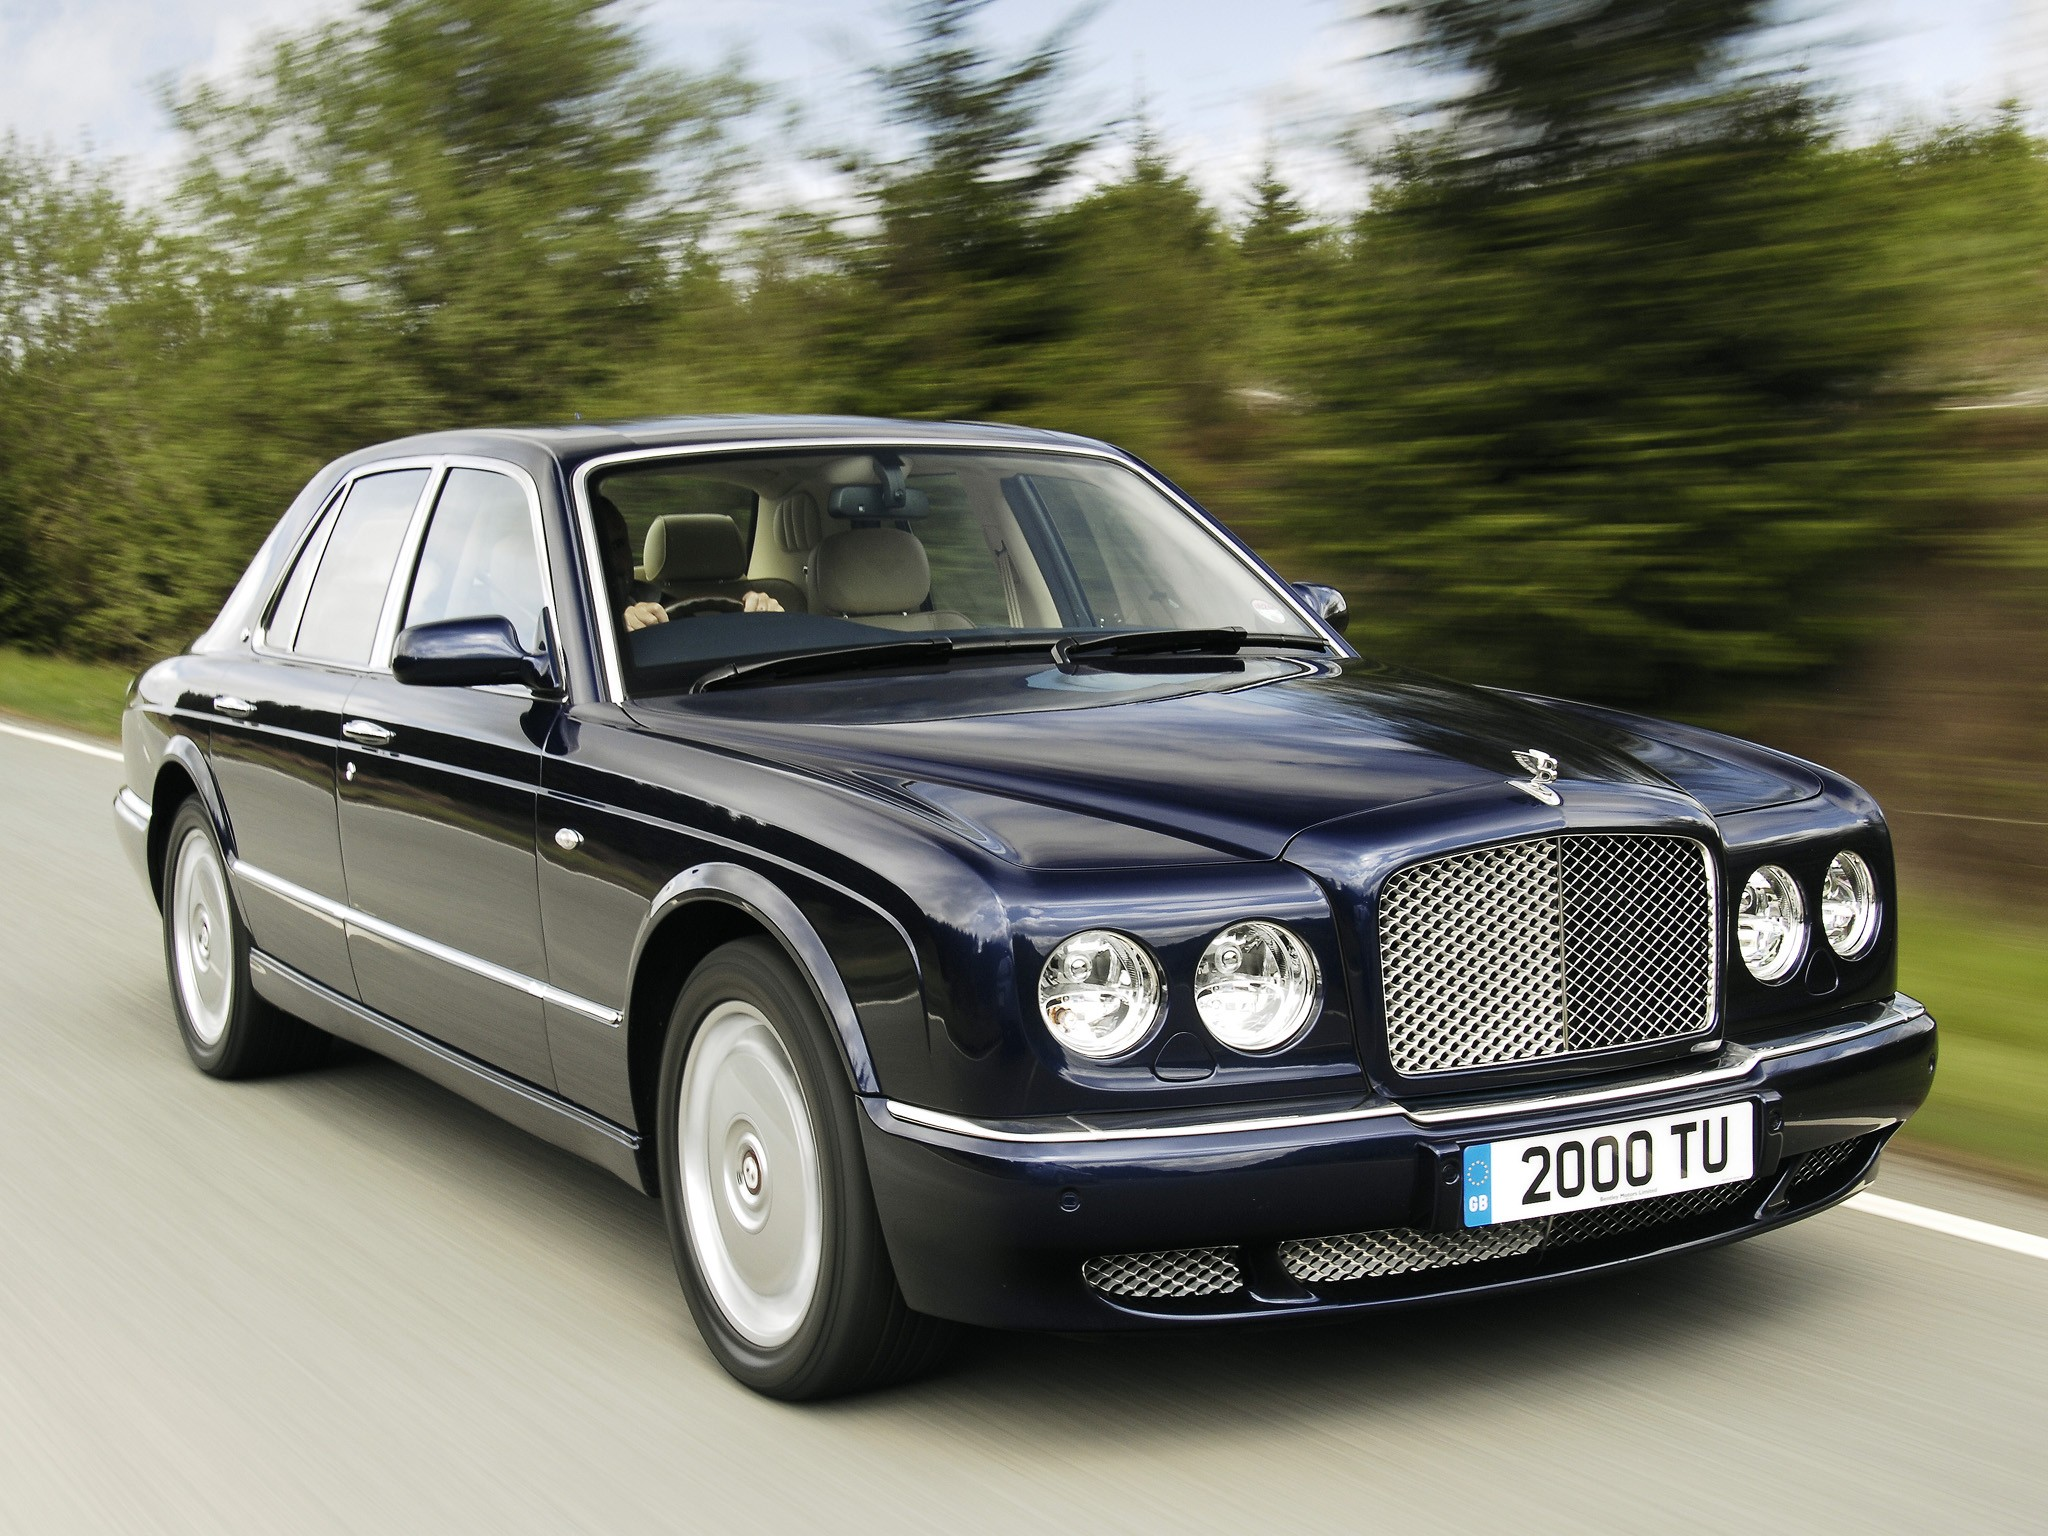 2003 bentley arnage rl gallery hd cars wallpaper 2005 bentley arnage blue train series gallery hd cars wallpaper 2007 bentley arnage image collections hd vanachro Images